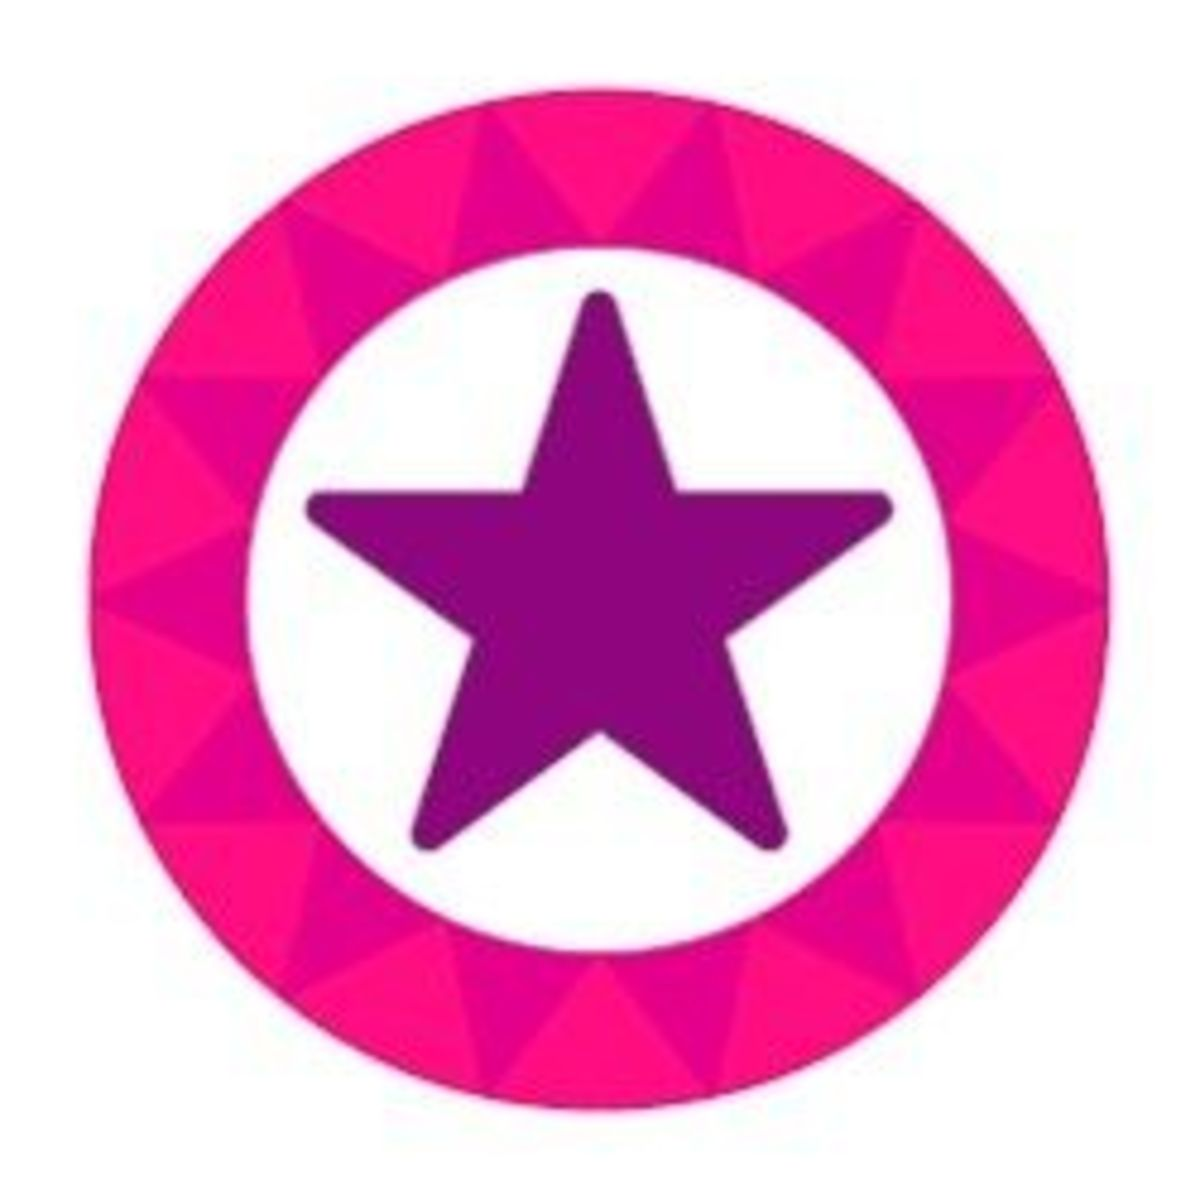 And a Purple Star